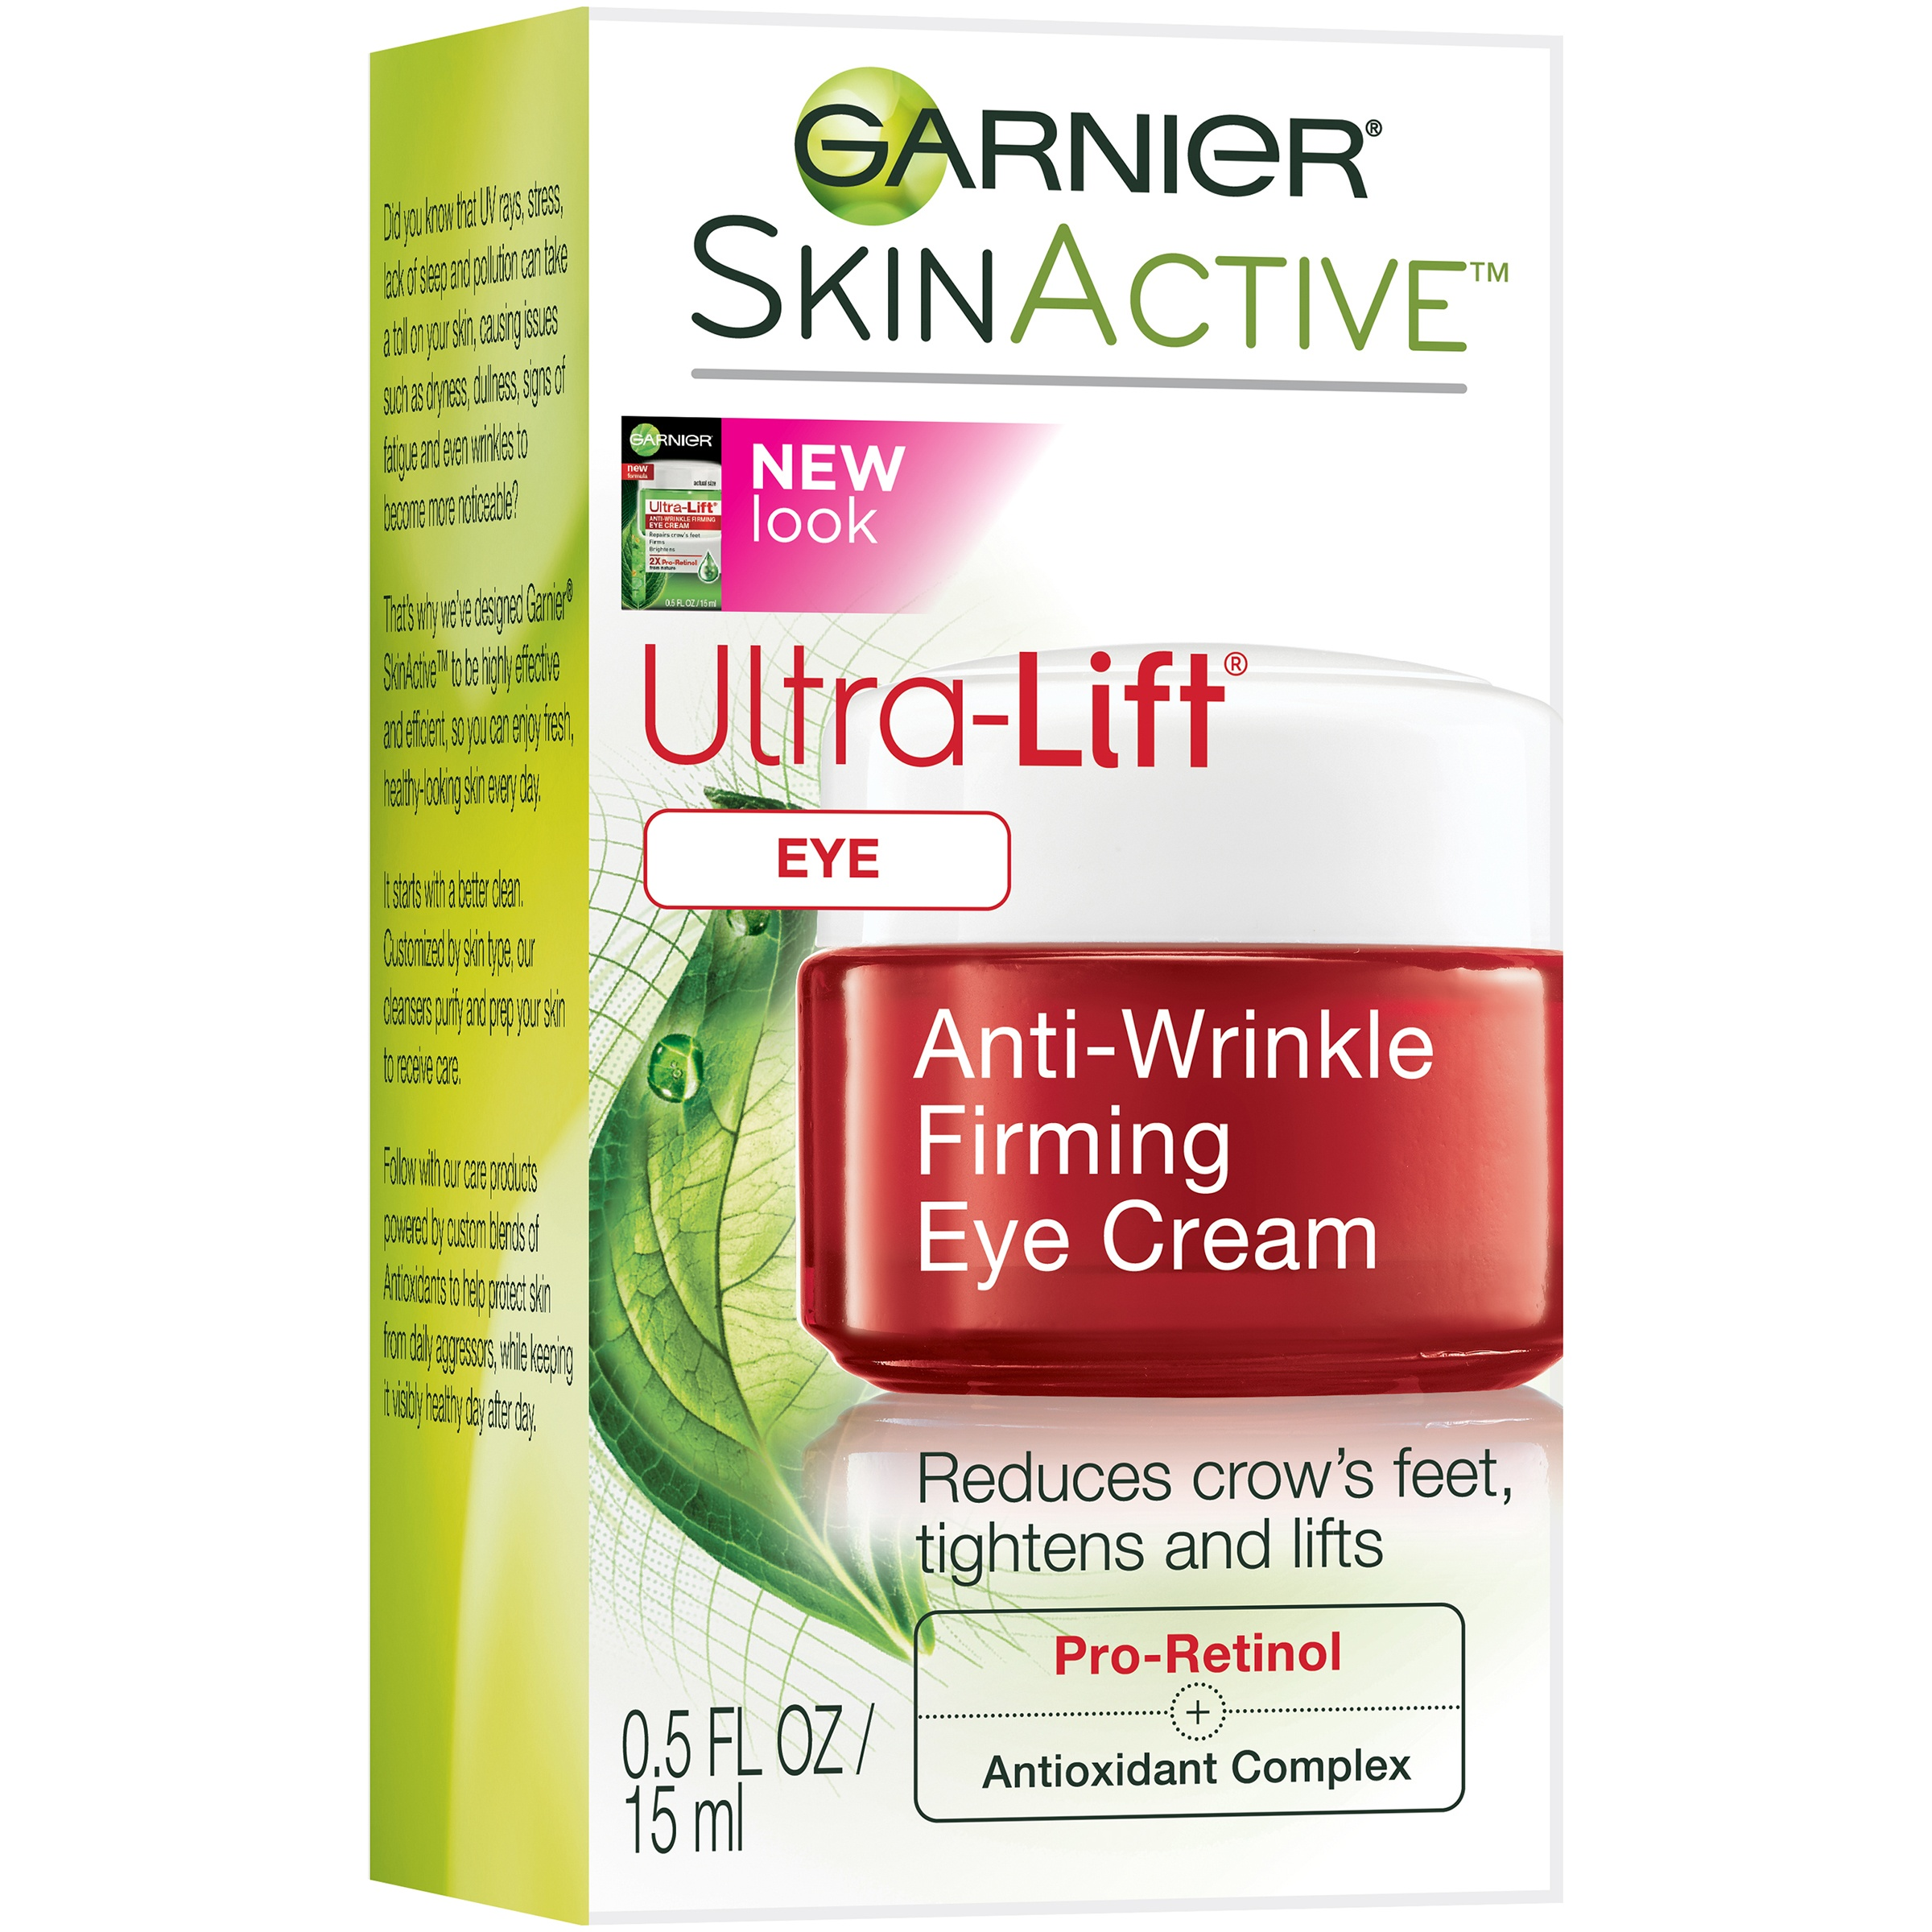 Garnier SkinActive Ultra-Lift Anti-Wrinkle Firming Eye Cream 0.5 fl. oz. Box